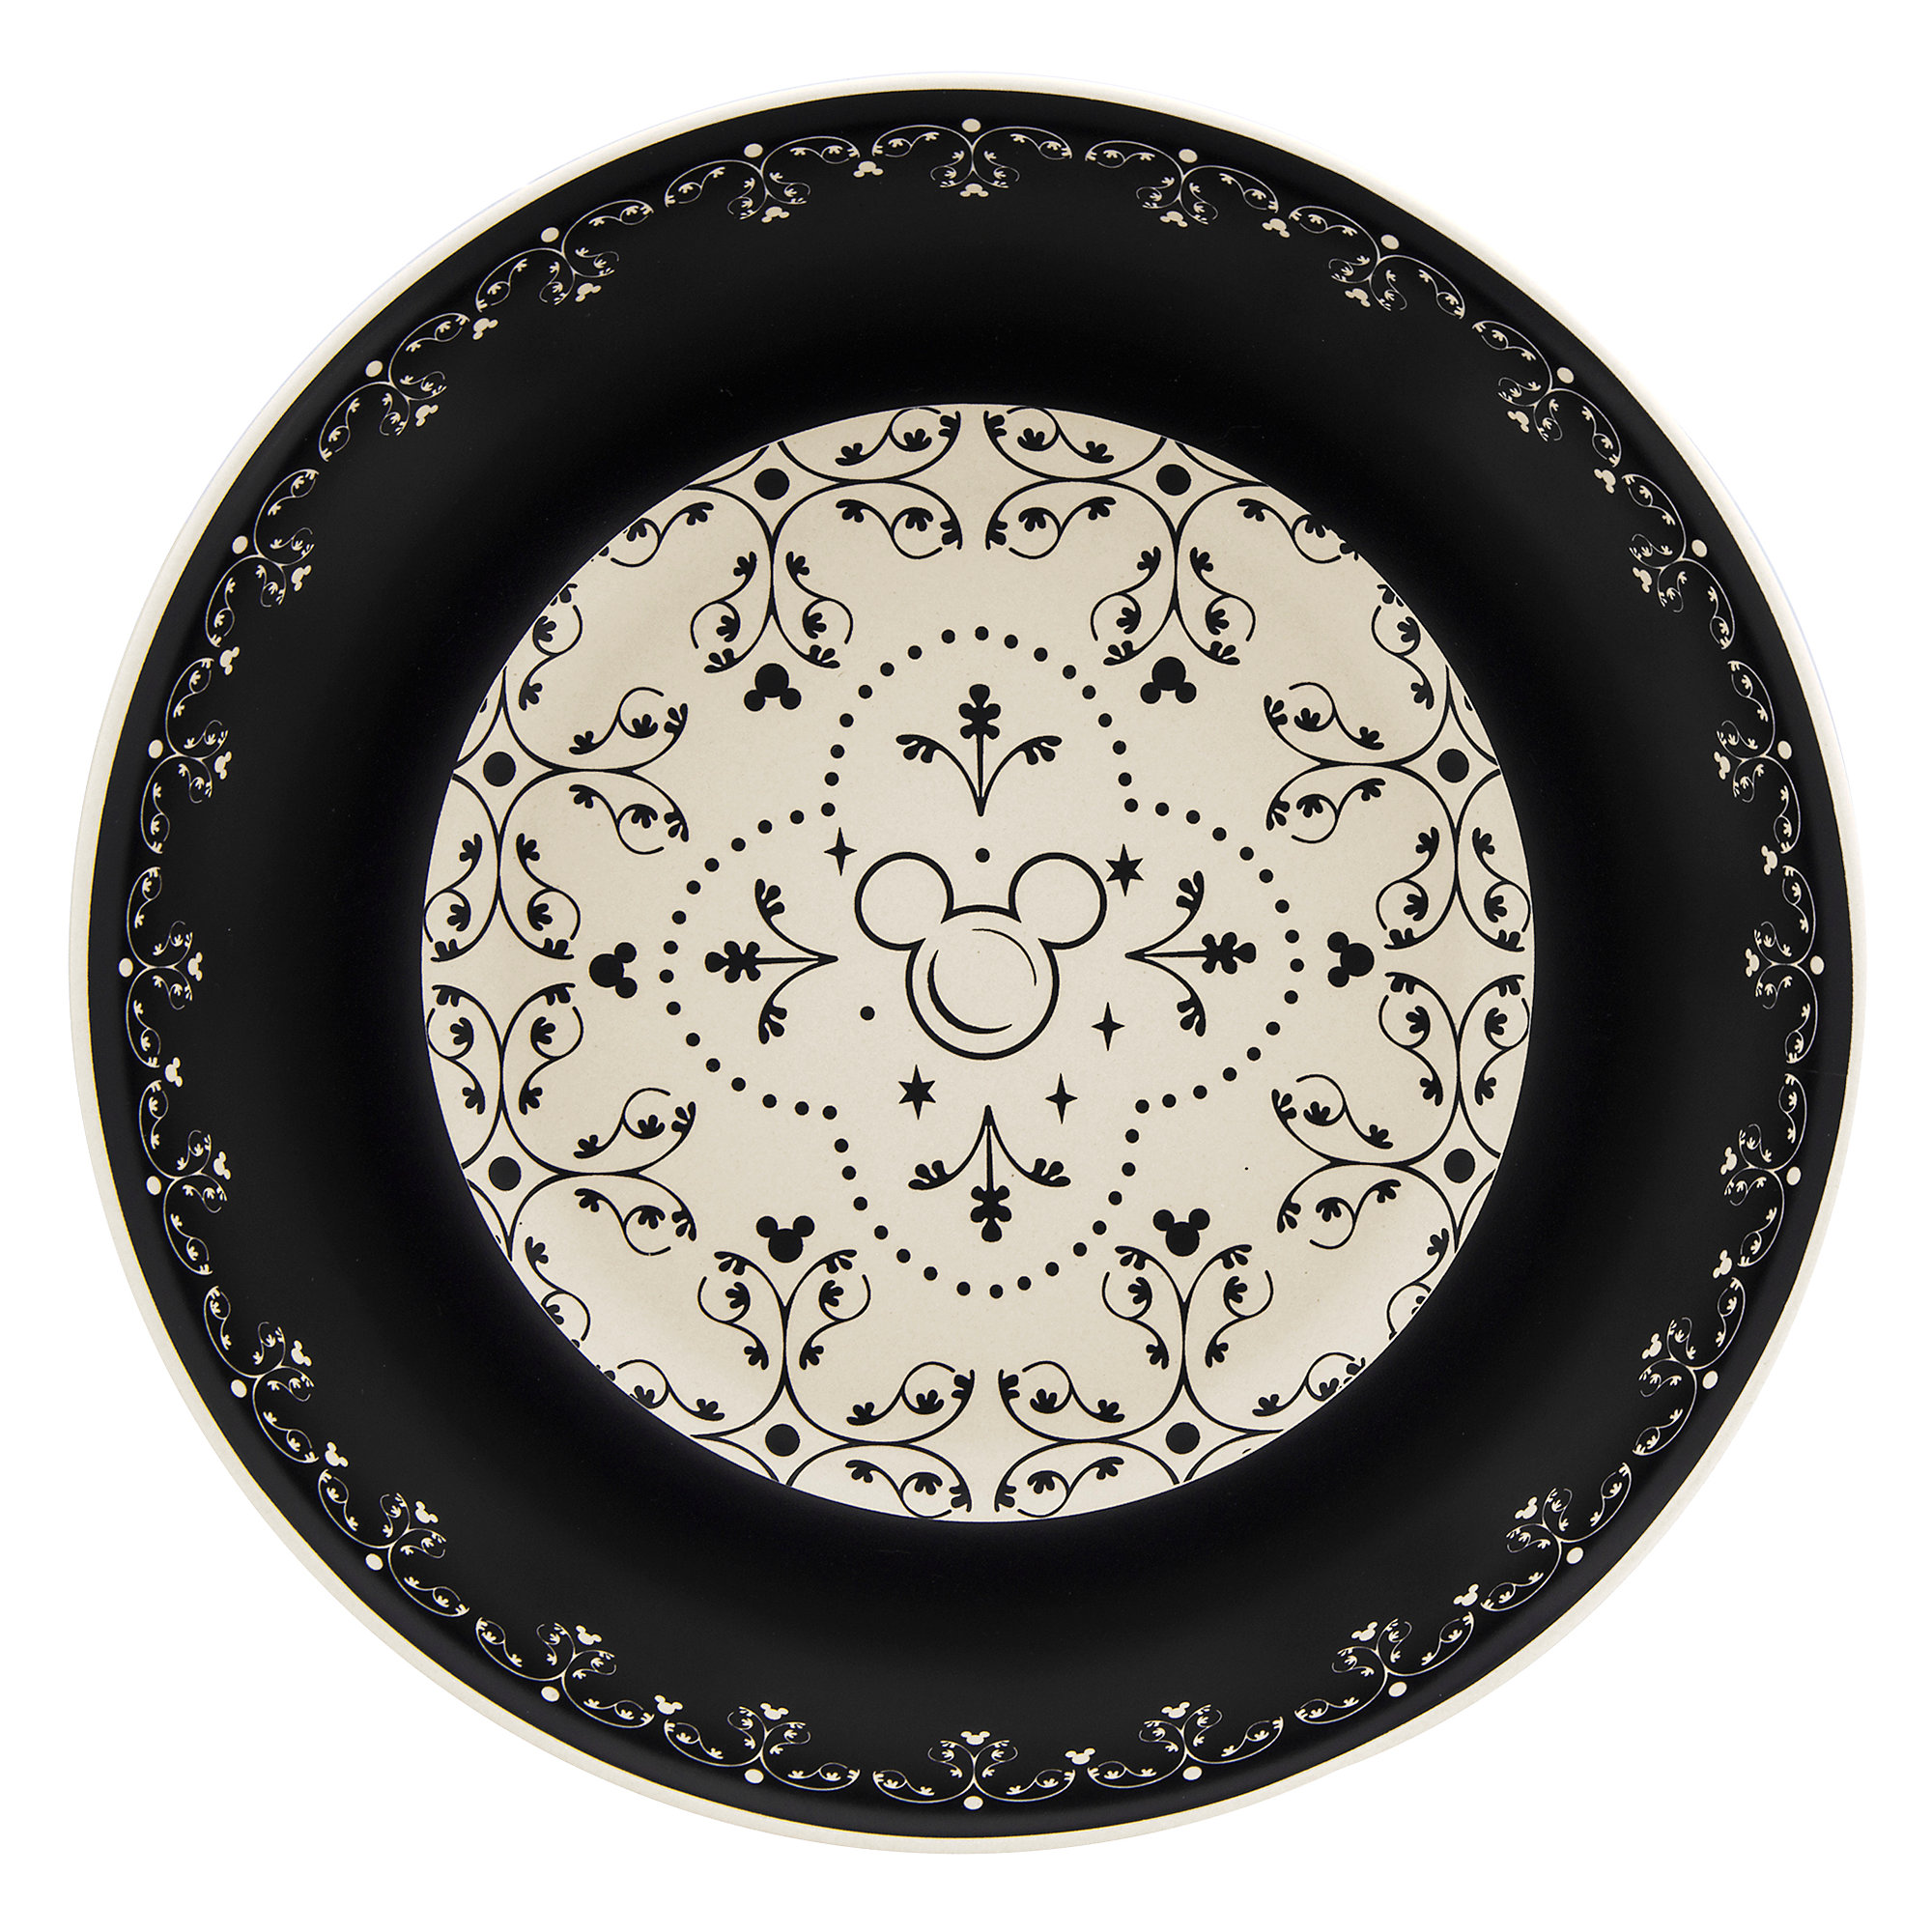 Thumbnail Image of Mickey Mouse Icon Bowl Set - Disney Dining Collection - Black / White  sc 1 st  shopDisney & Mickey Mouse Icon Bowl Set - Disney Dining Collection - Black ...